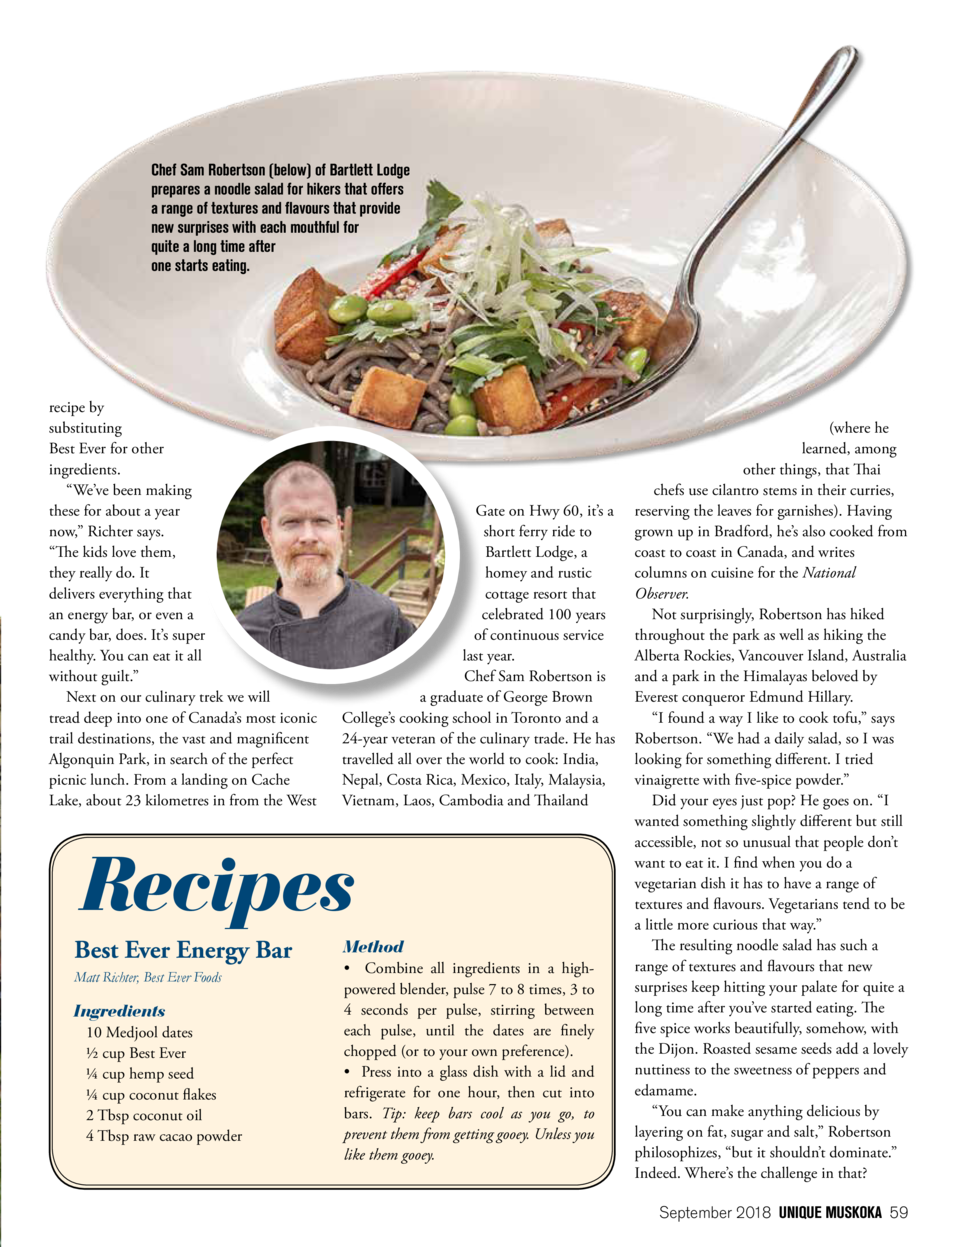 Chef Sam Robertson  below  of Bartlett Lodge prepares a noodle salad for hikers that offers a range of textures and flavou...